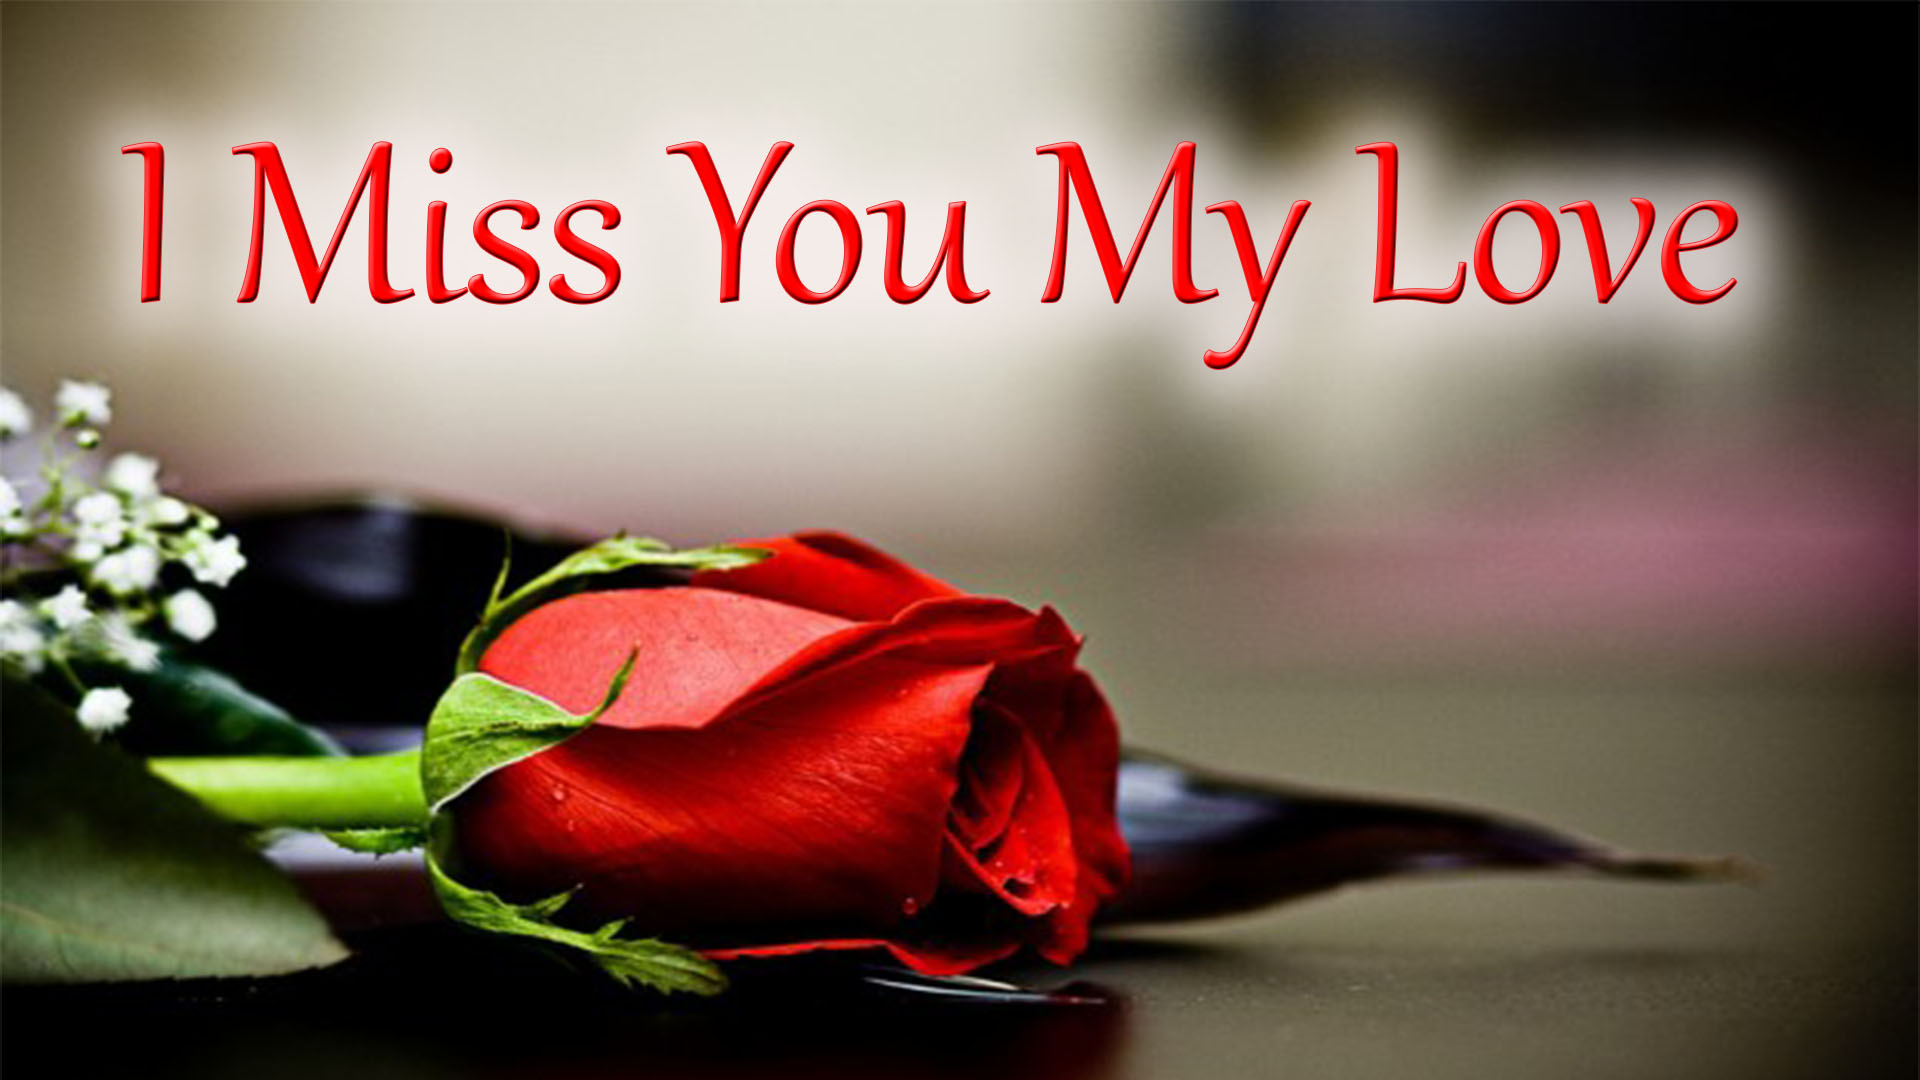 I Miss You My Love  Missing You Quotes - Wishes Quotes Images